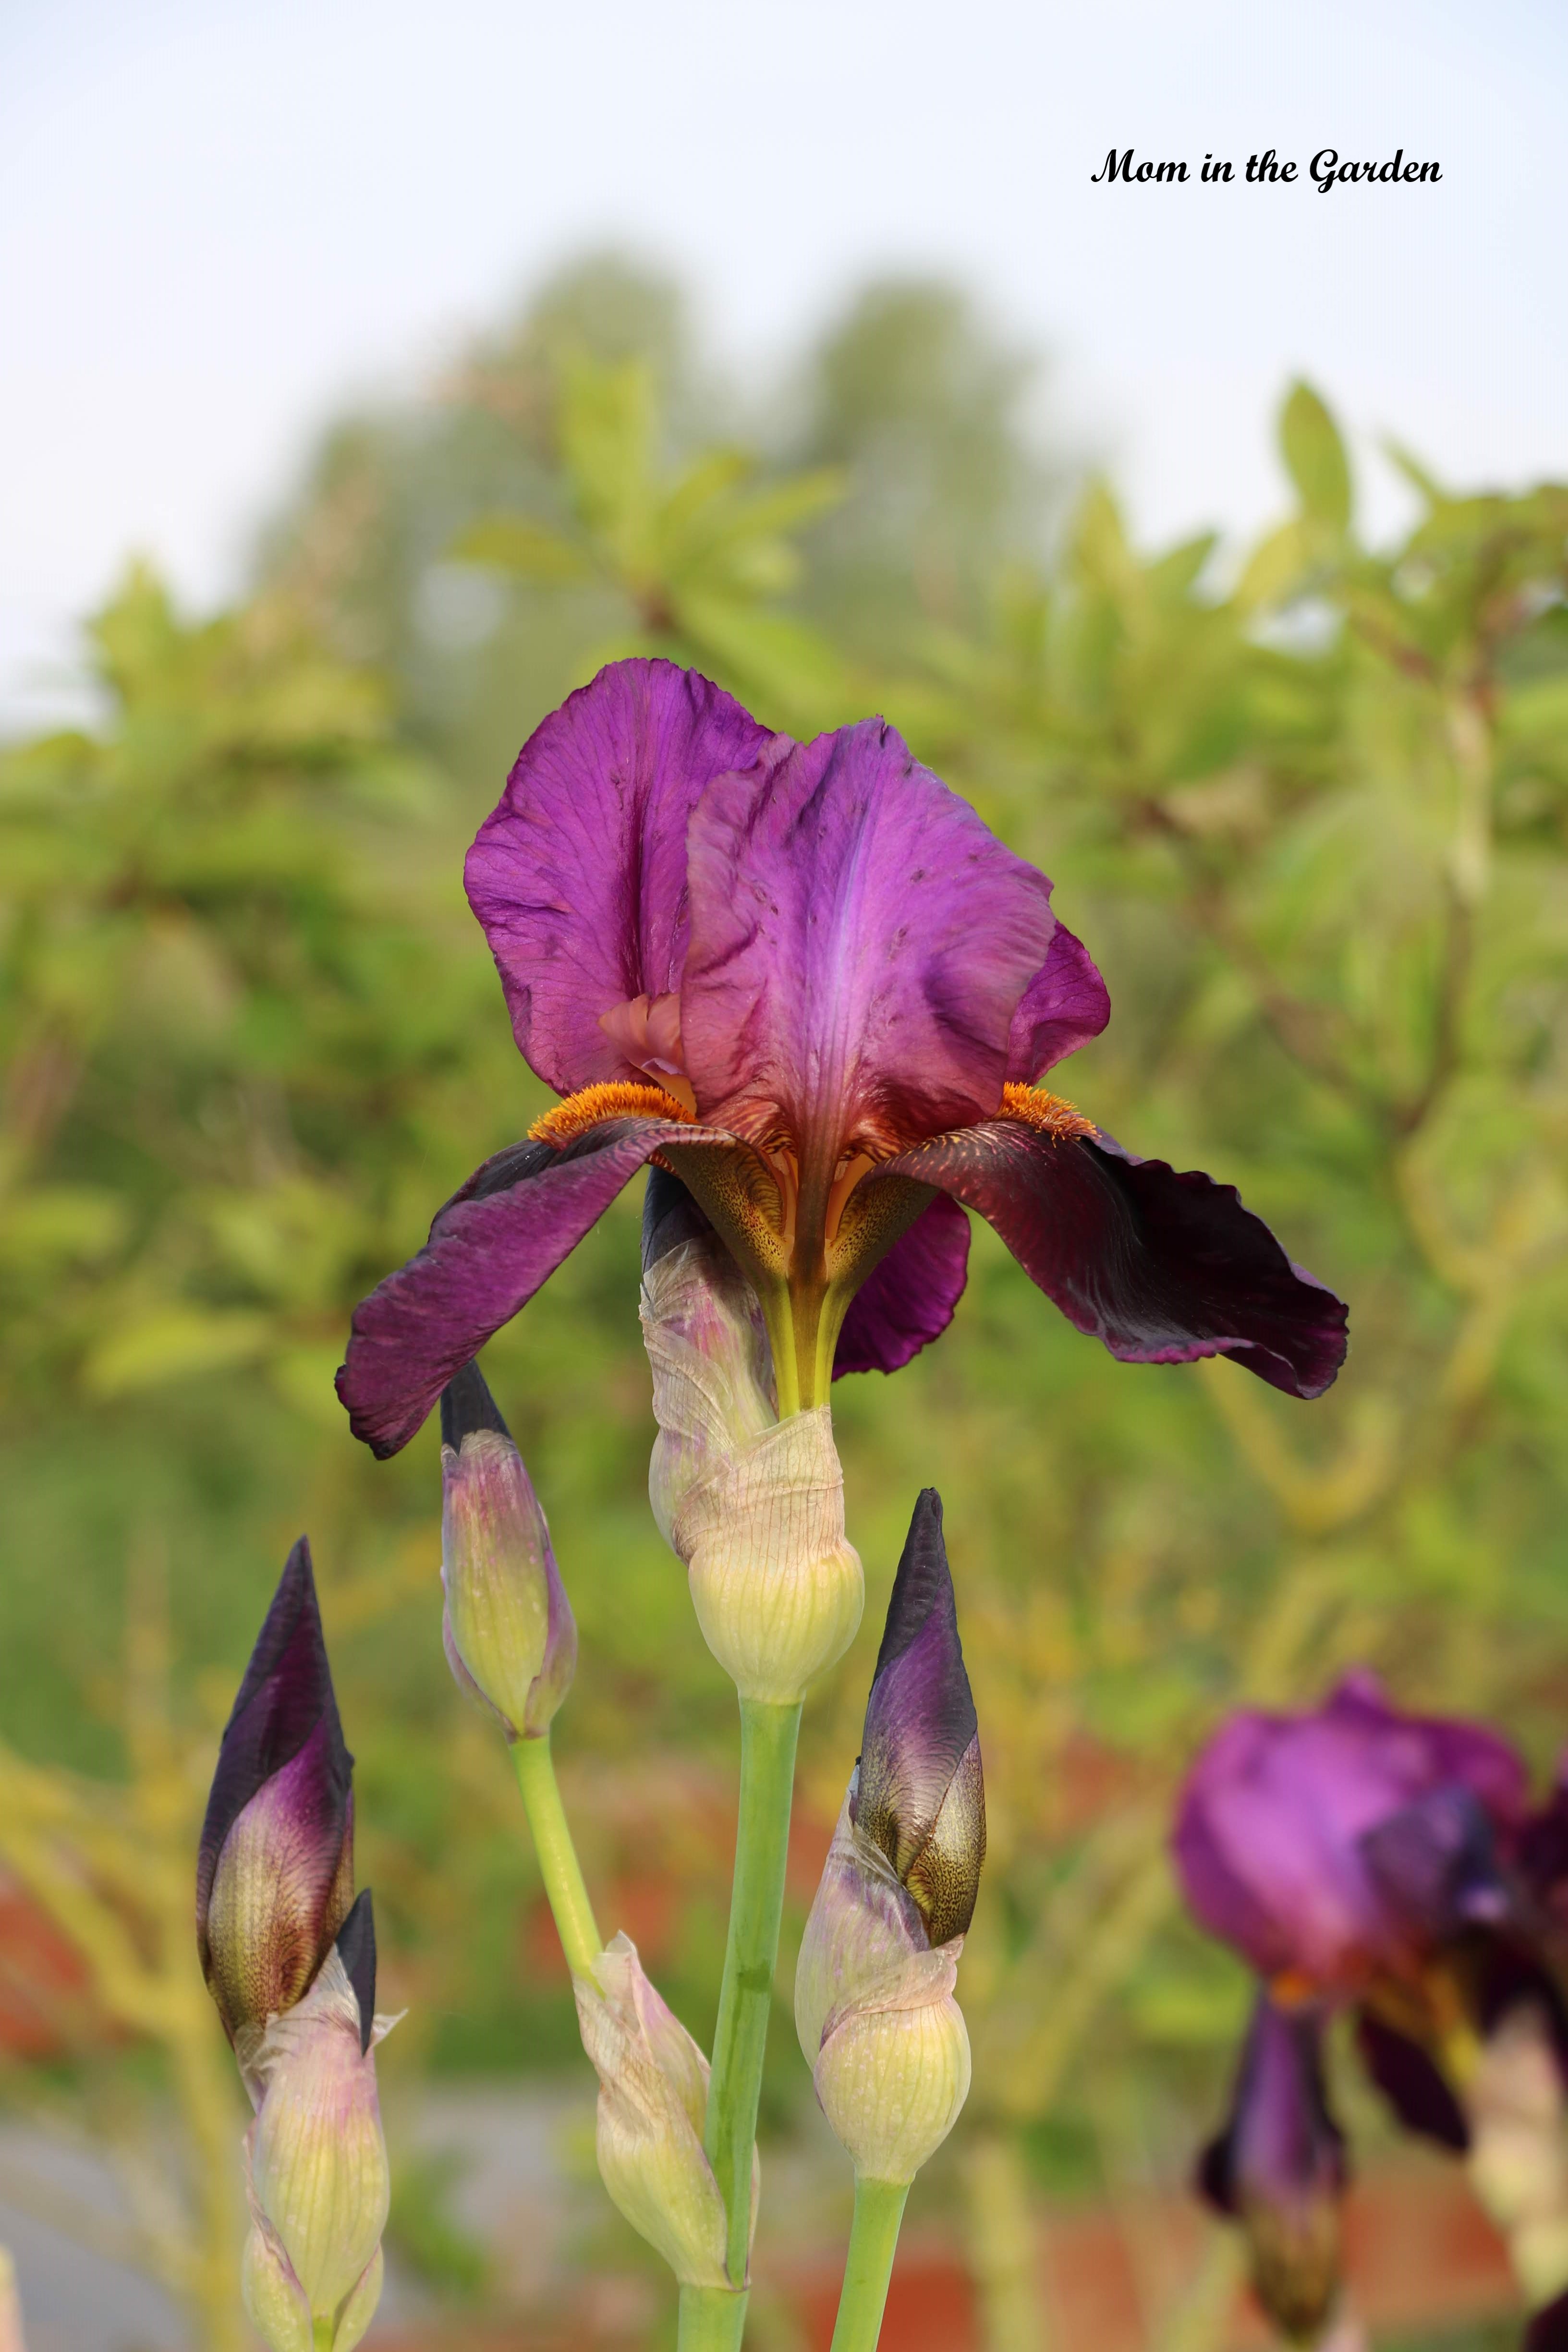 Iris Benton Storrington petals out